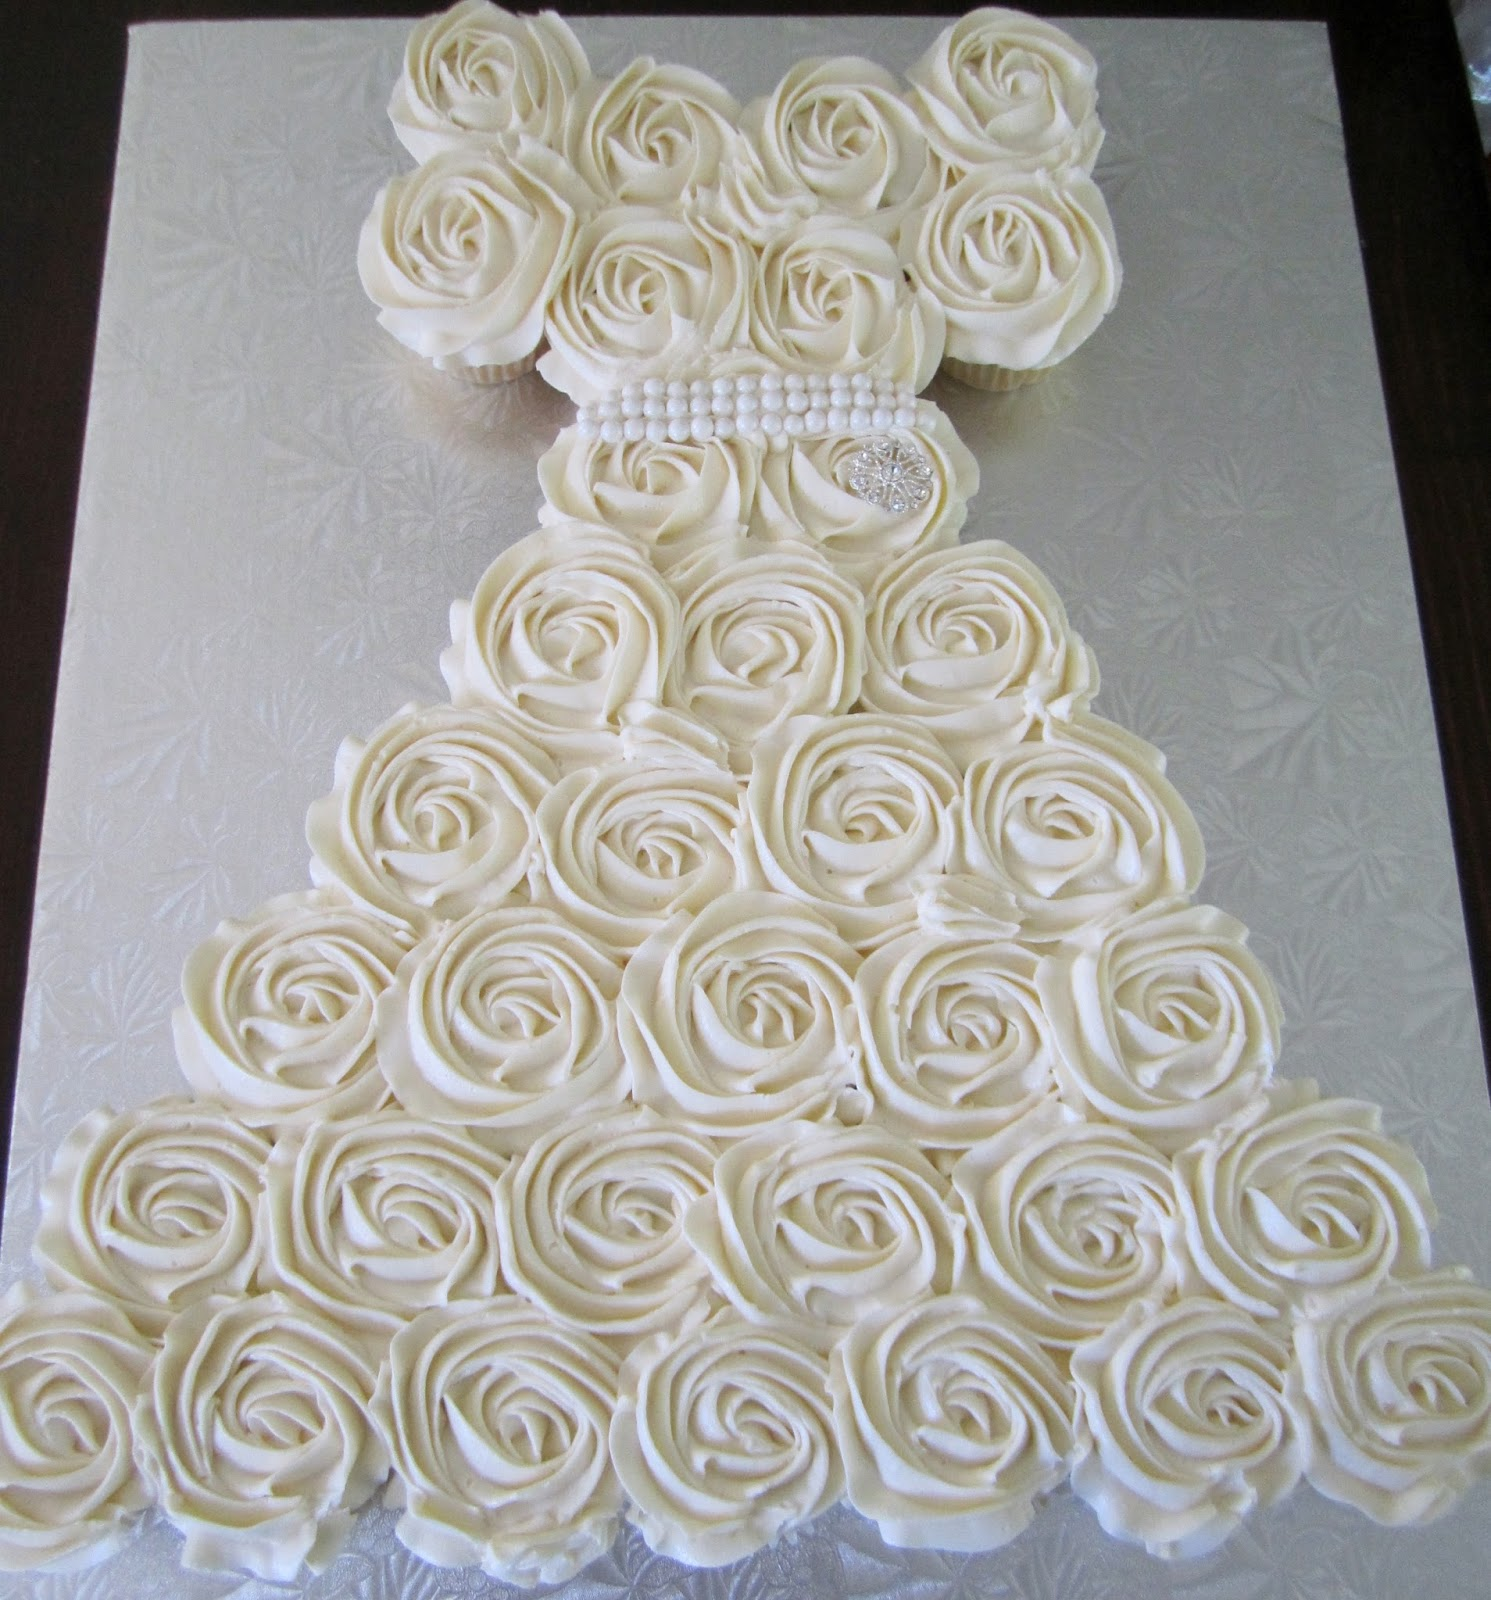 Wedding Cupcake Wedding Dress cakes or something like that bridal shower cupcake wedding dress floral bouquets